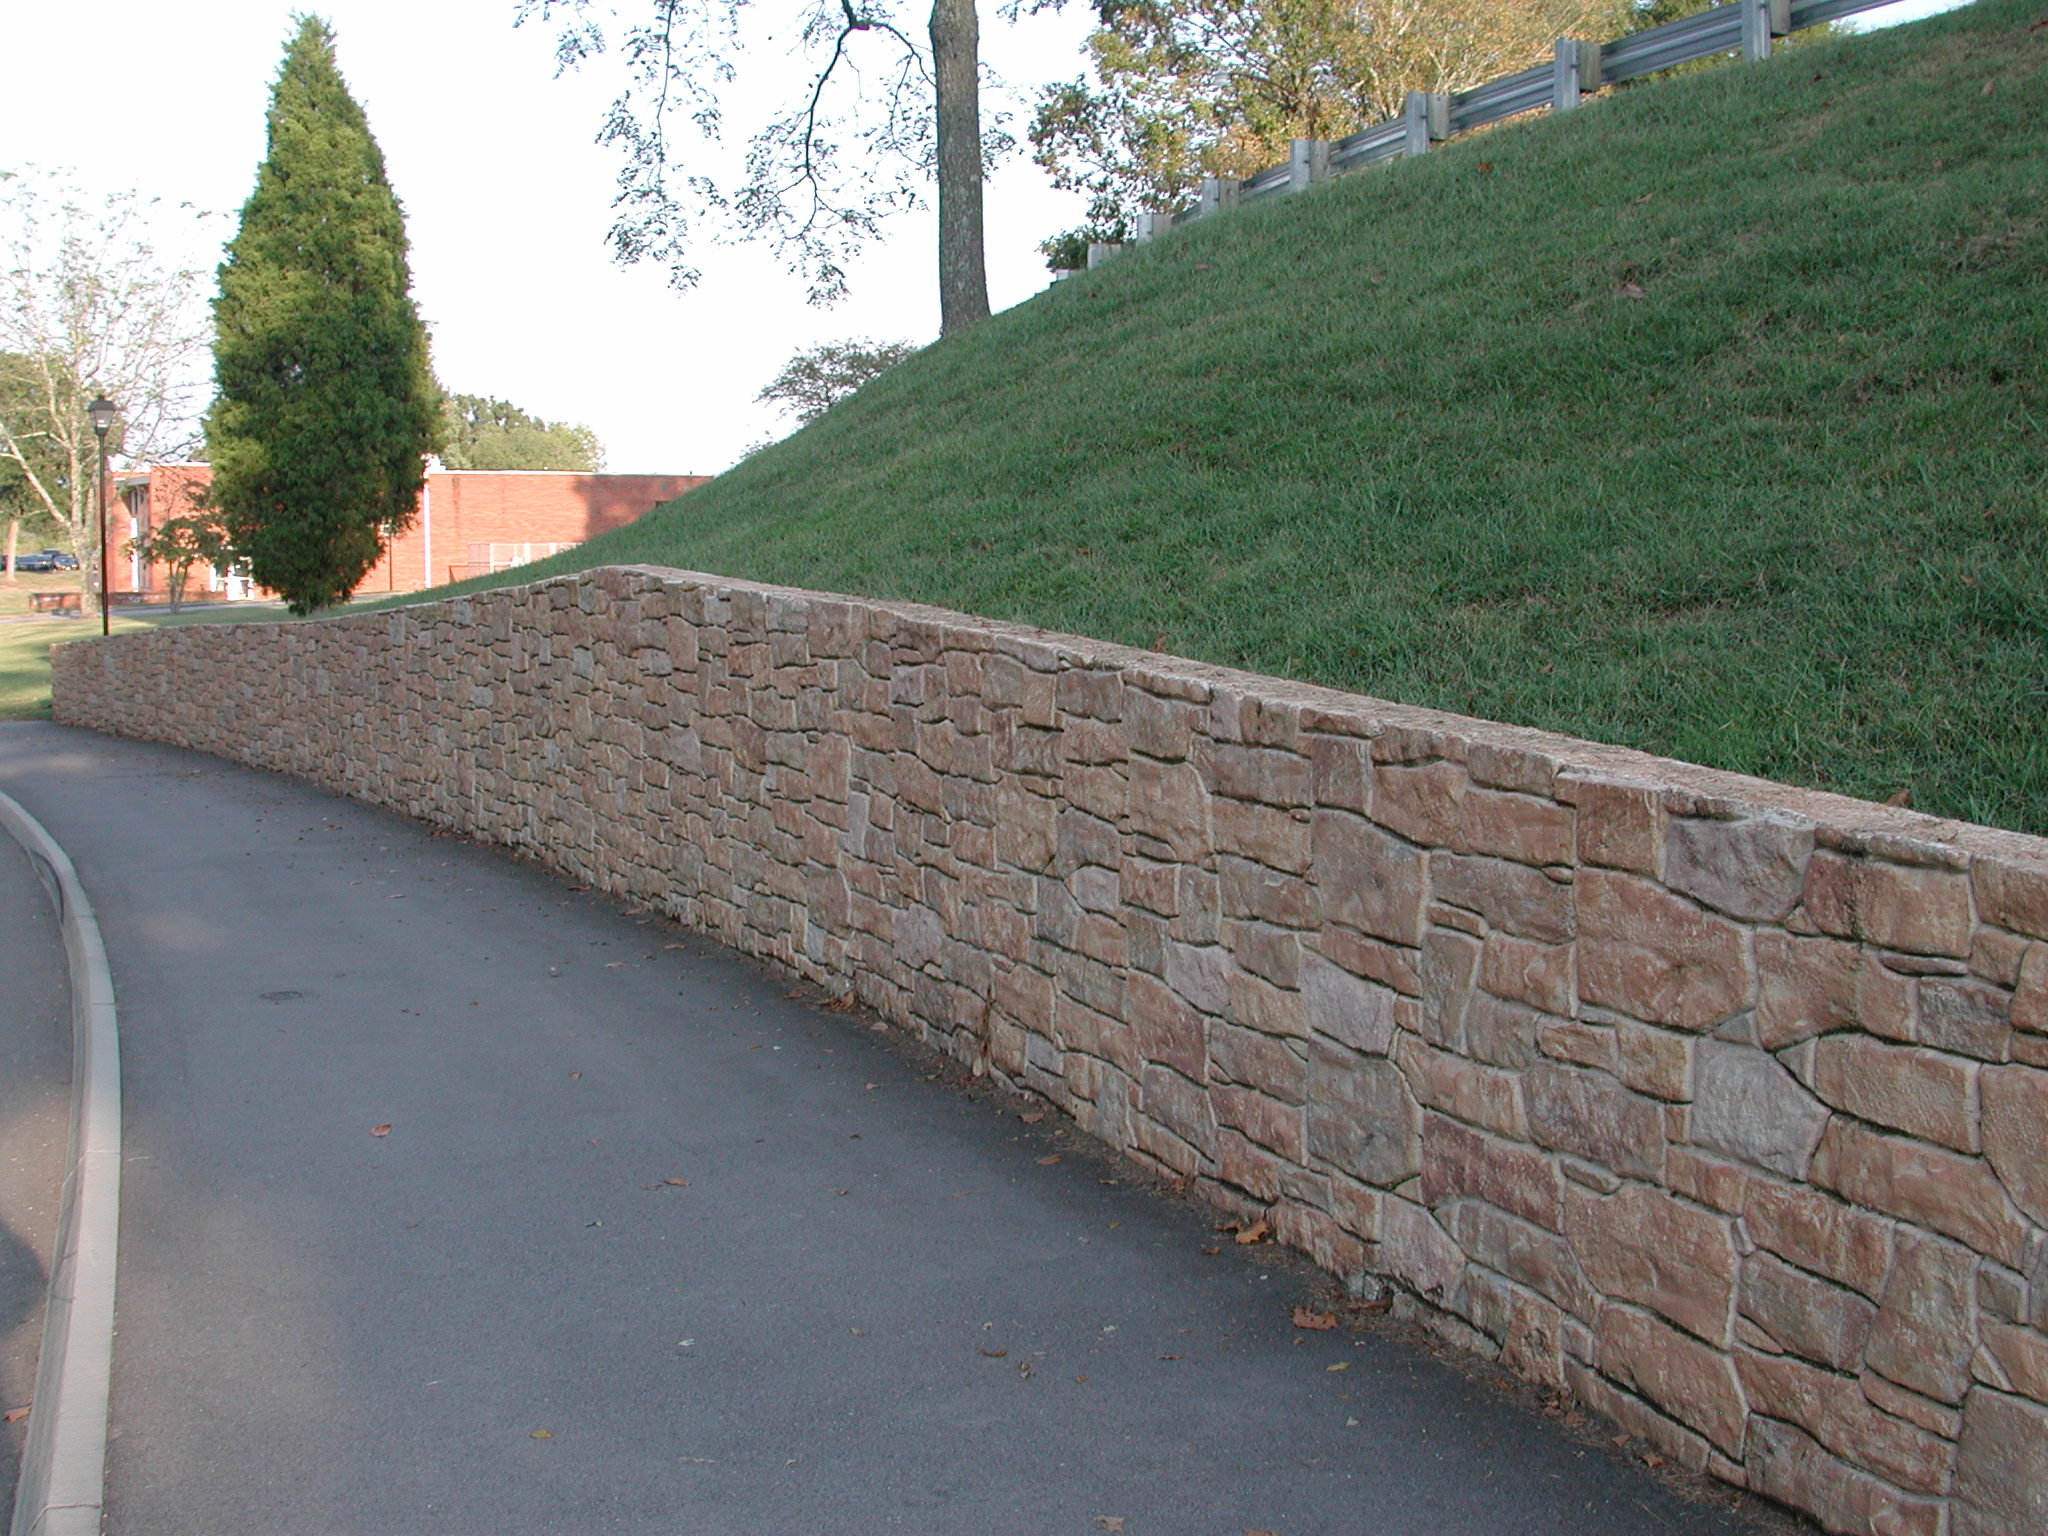 12005-bearpath-coursed-stone-formliner-hq-31